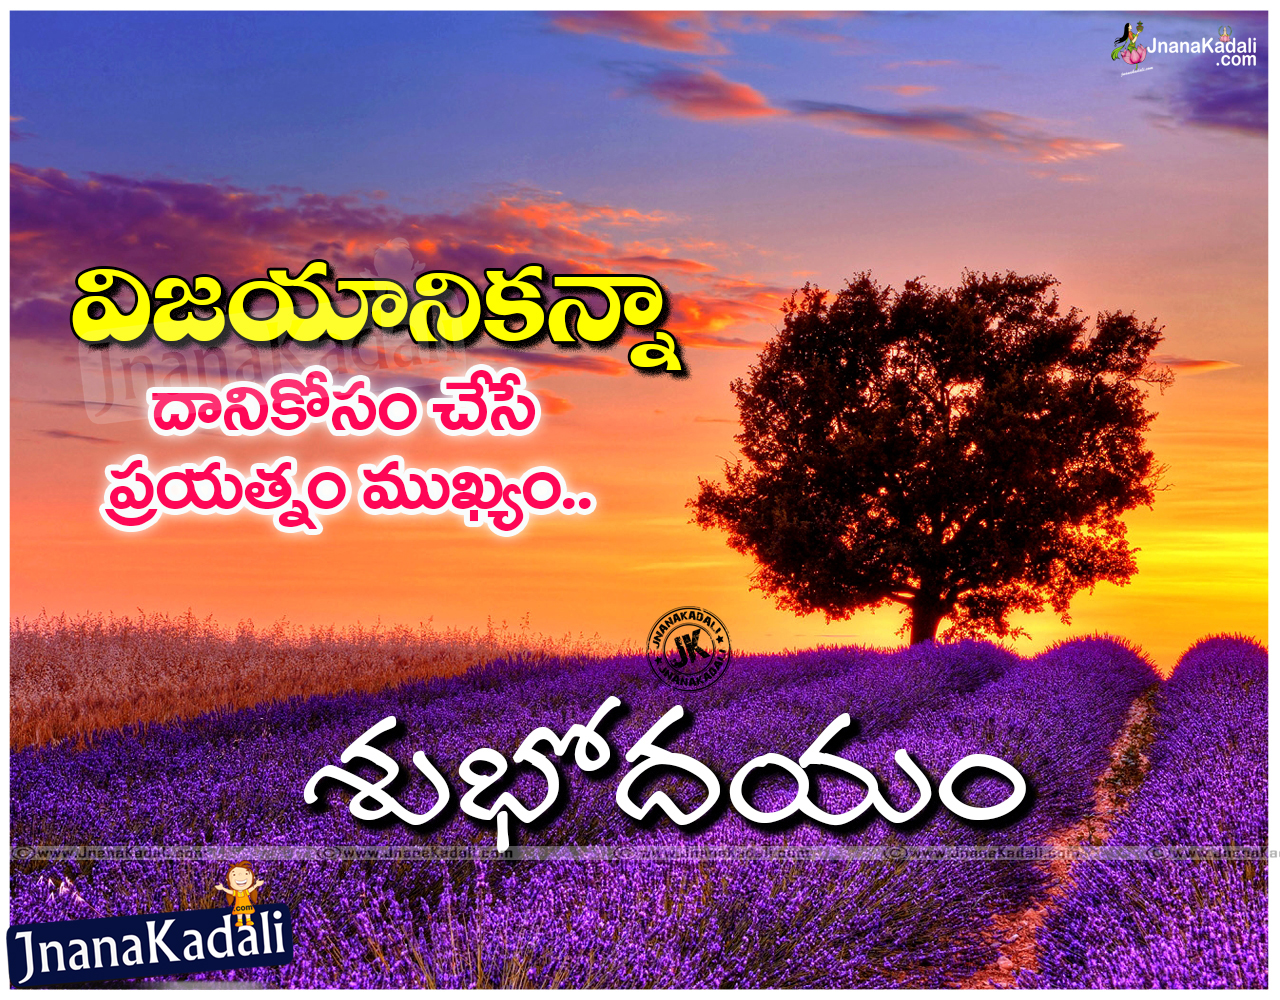 Good Morning Quotes For Facebook Inspiring Telugu Good Morning Greetings  With Beautiful Wallpapers